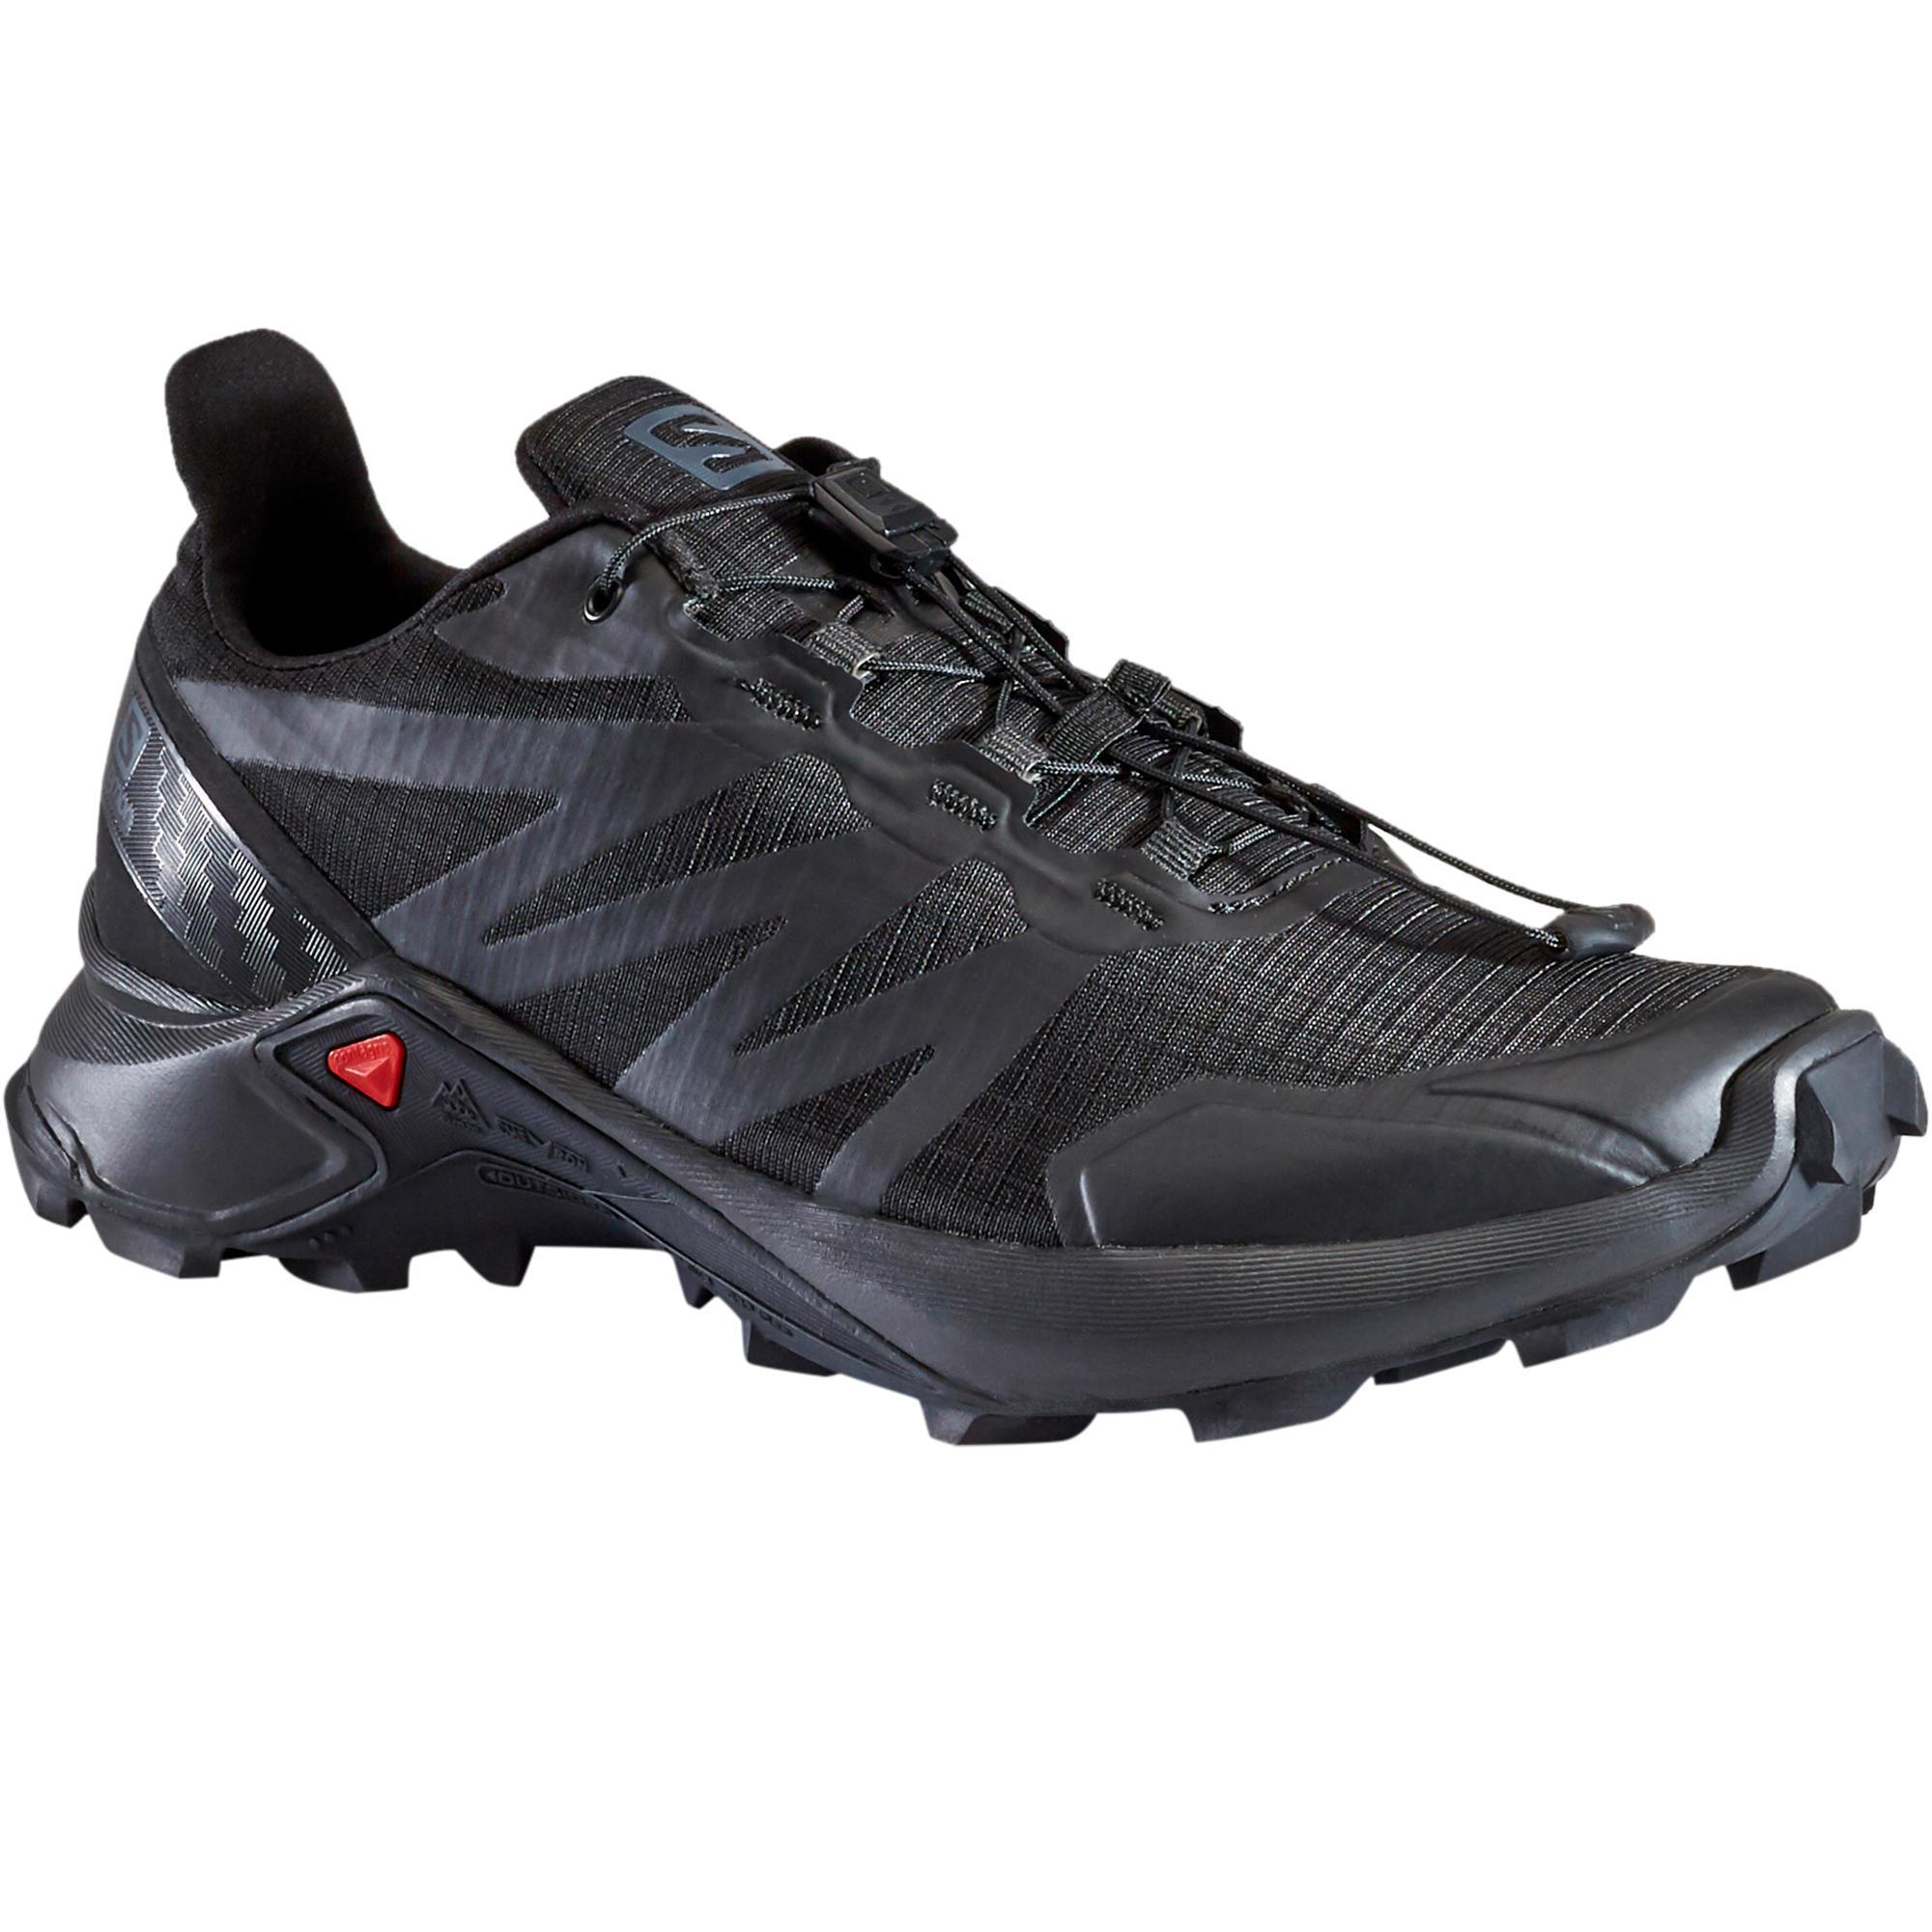 Comprar Zapatillas de Trail Running | Decathlon